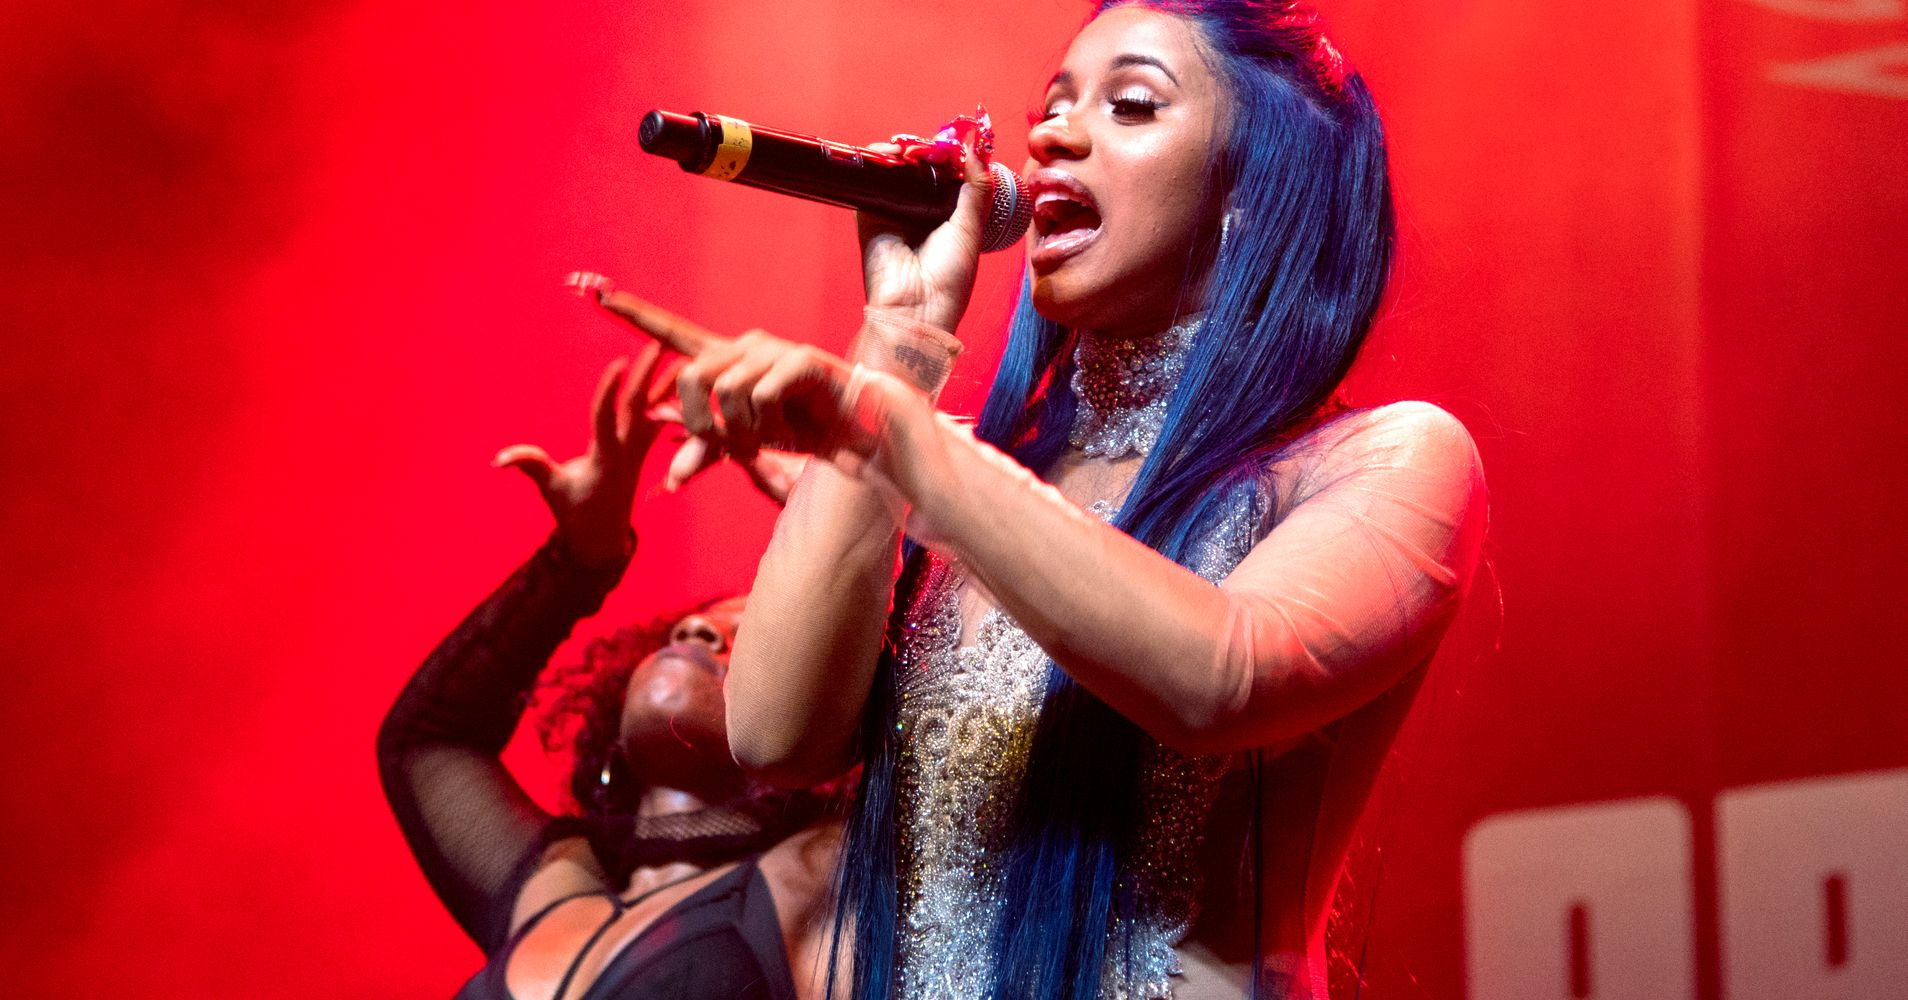 Cardi B Rapping: Cardi B Is The Only Rapper With First 3 Singles In Top 10